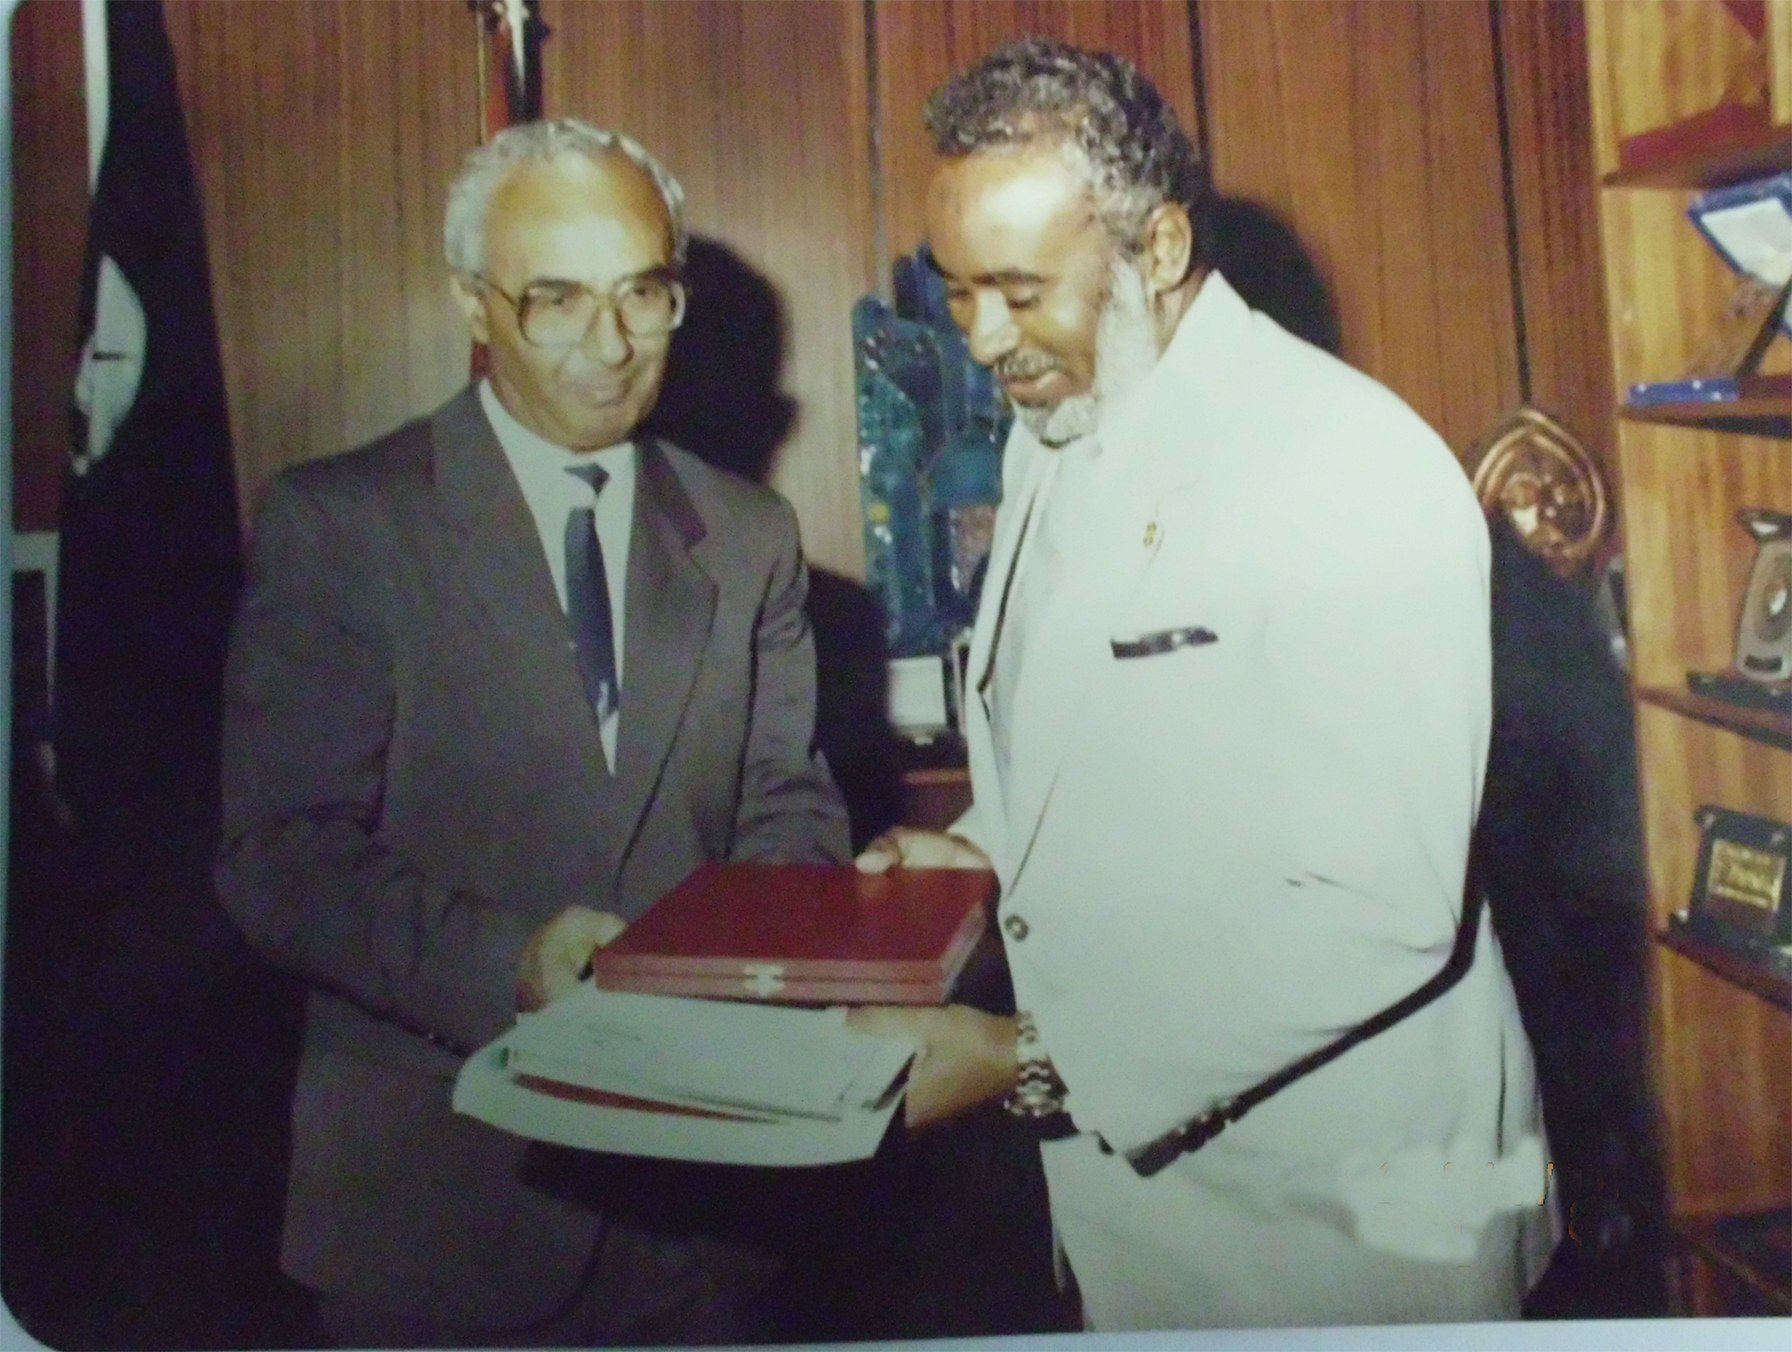 Recieving-an-appreciation-award-from-vice-chancellor-University-of-Yarmouk-Jordan-1993